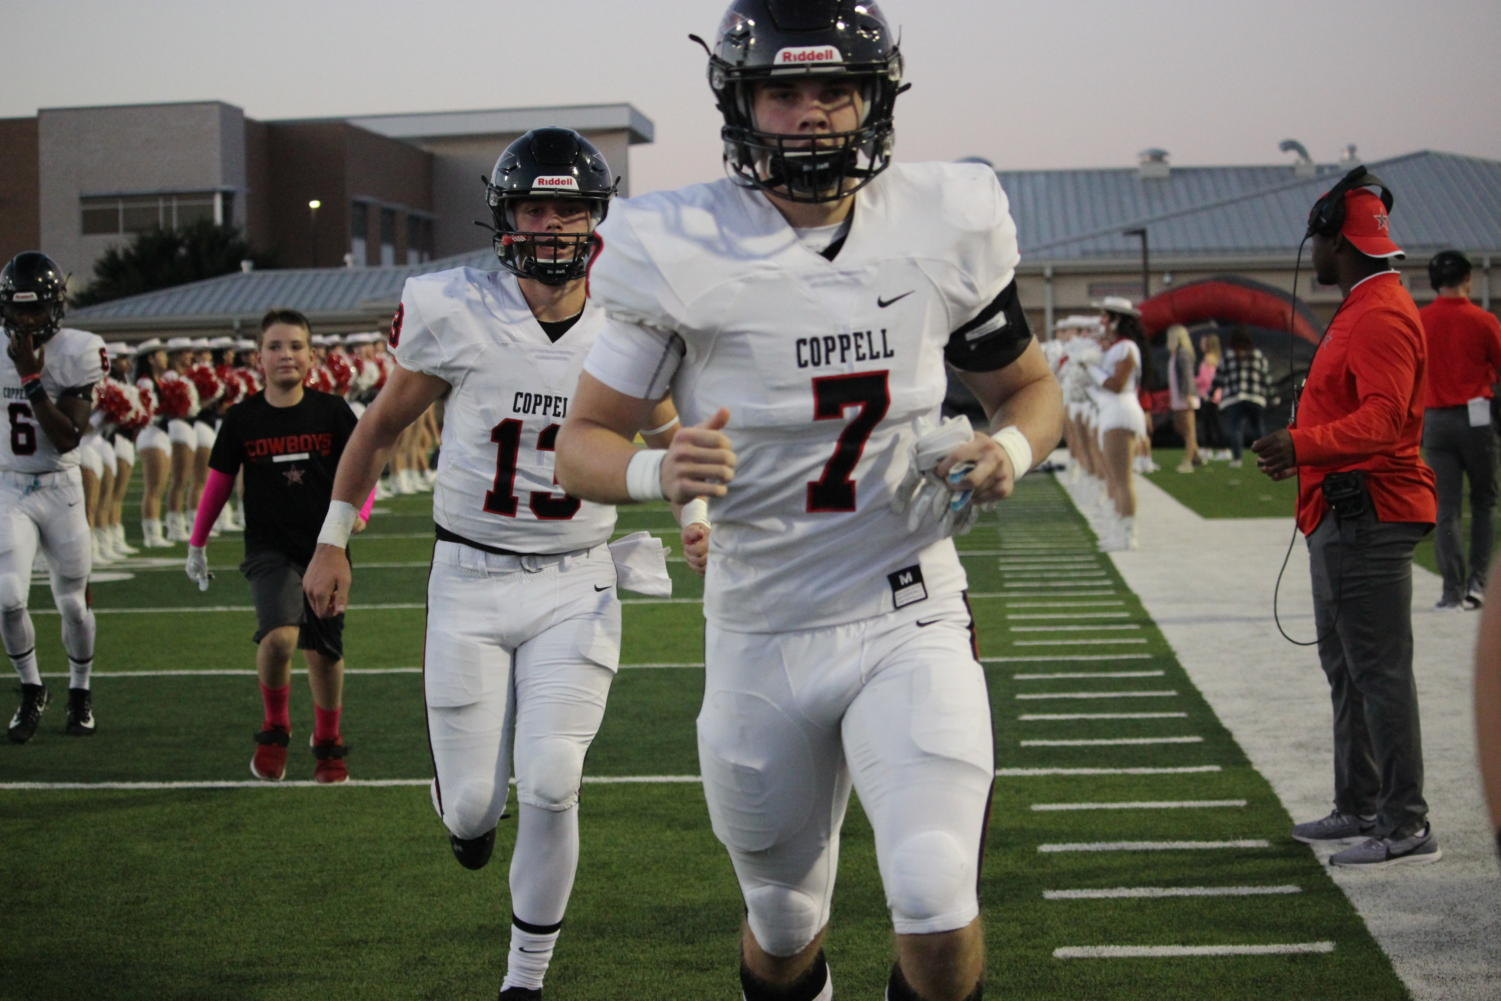 Coppell sophomore quarterback Landry Fee and senior defensive back Gavin Osteen run out during the game against Marcus on Oct. 18 at Marauders Stadium. The Cowboys face Irving tonight at 7 p.m. at Buddy Echols Field for the Homecoming game.